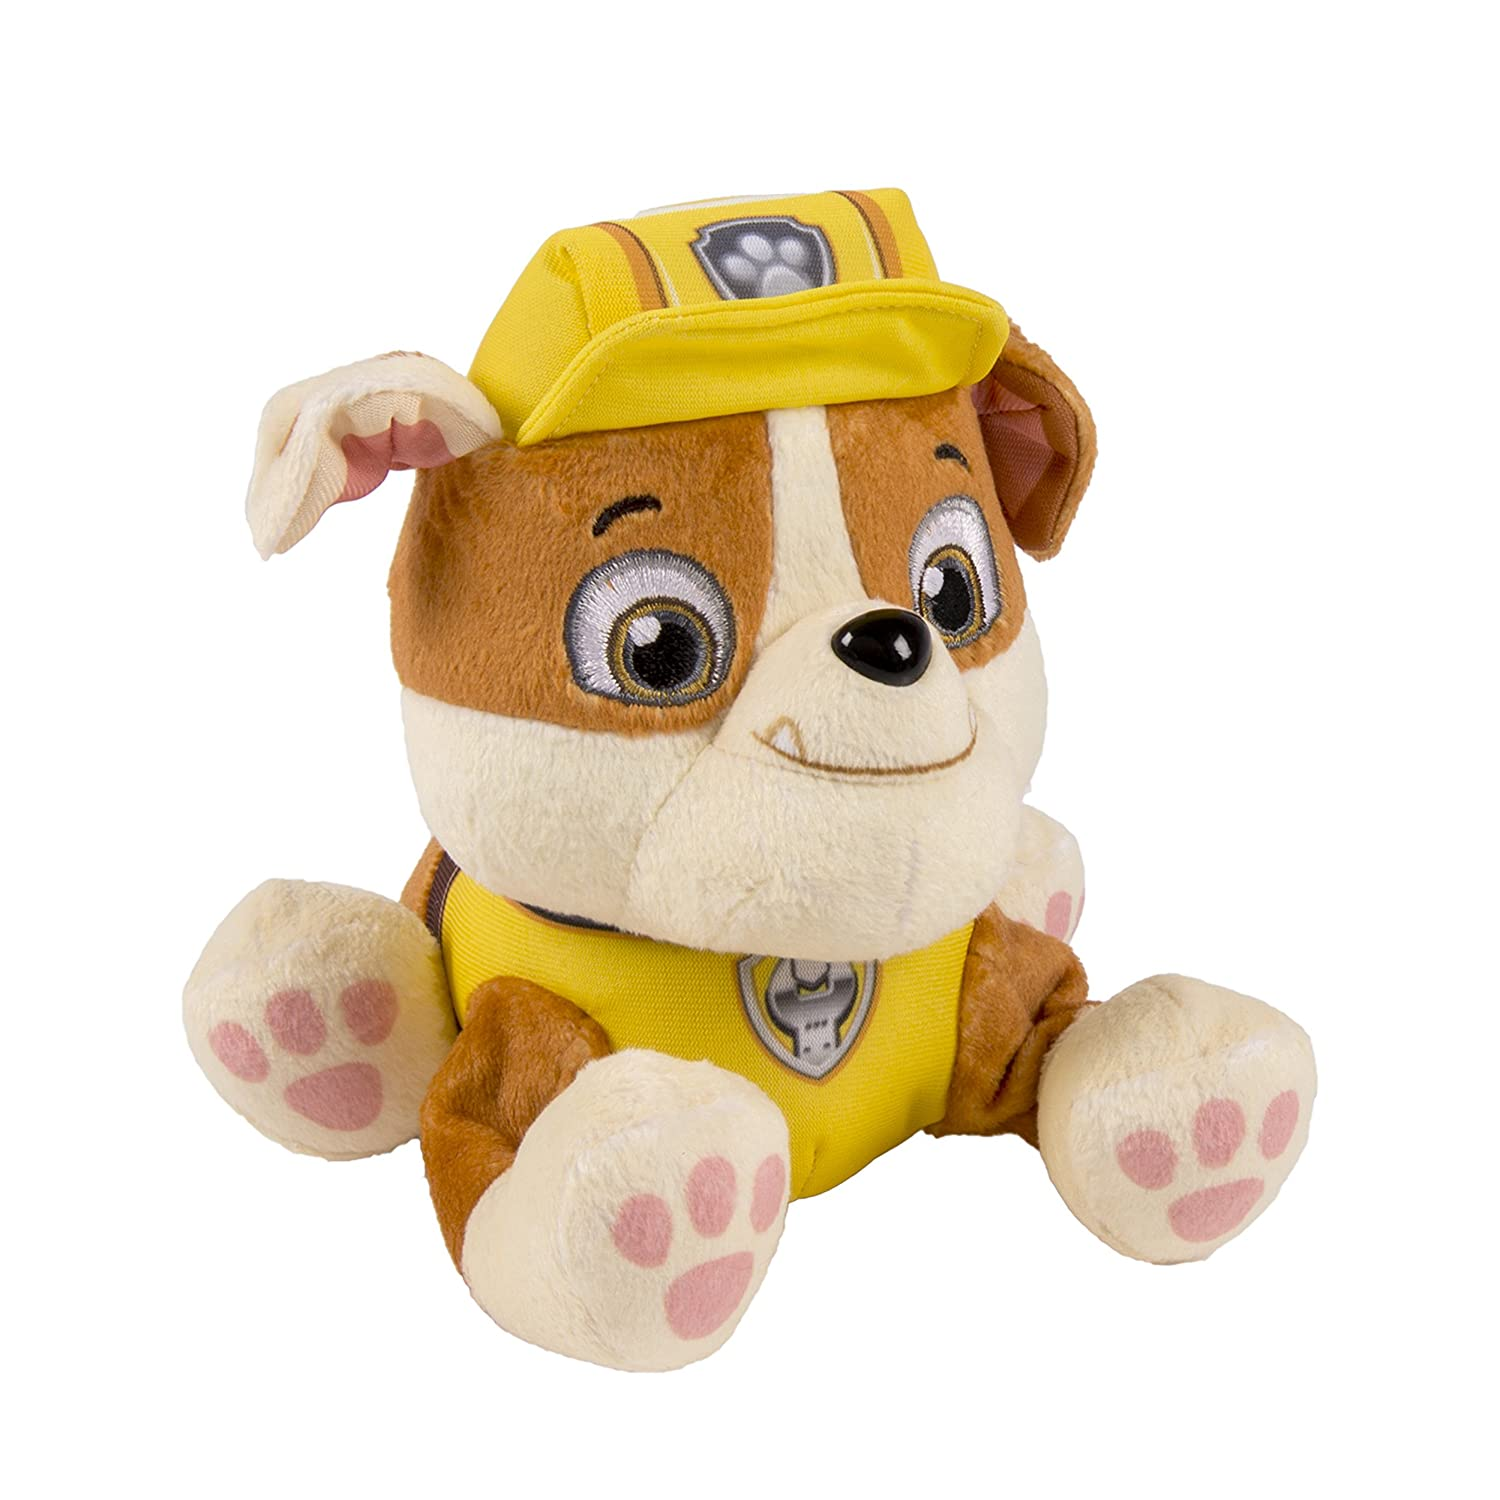 Paw Patrol Plush Pup Pals, Rubble Spin Master 20064017-6023999